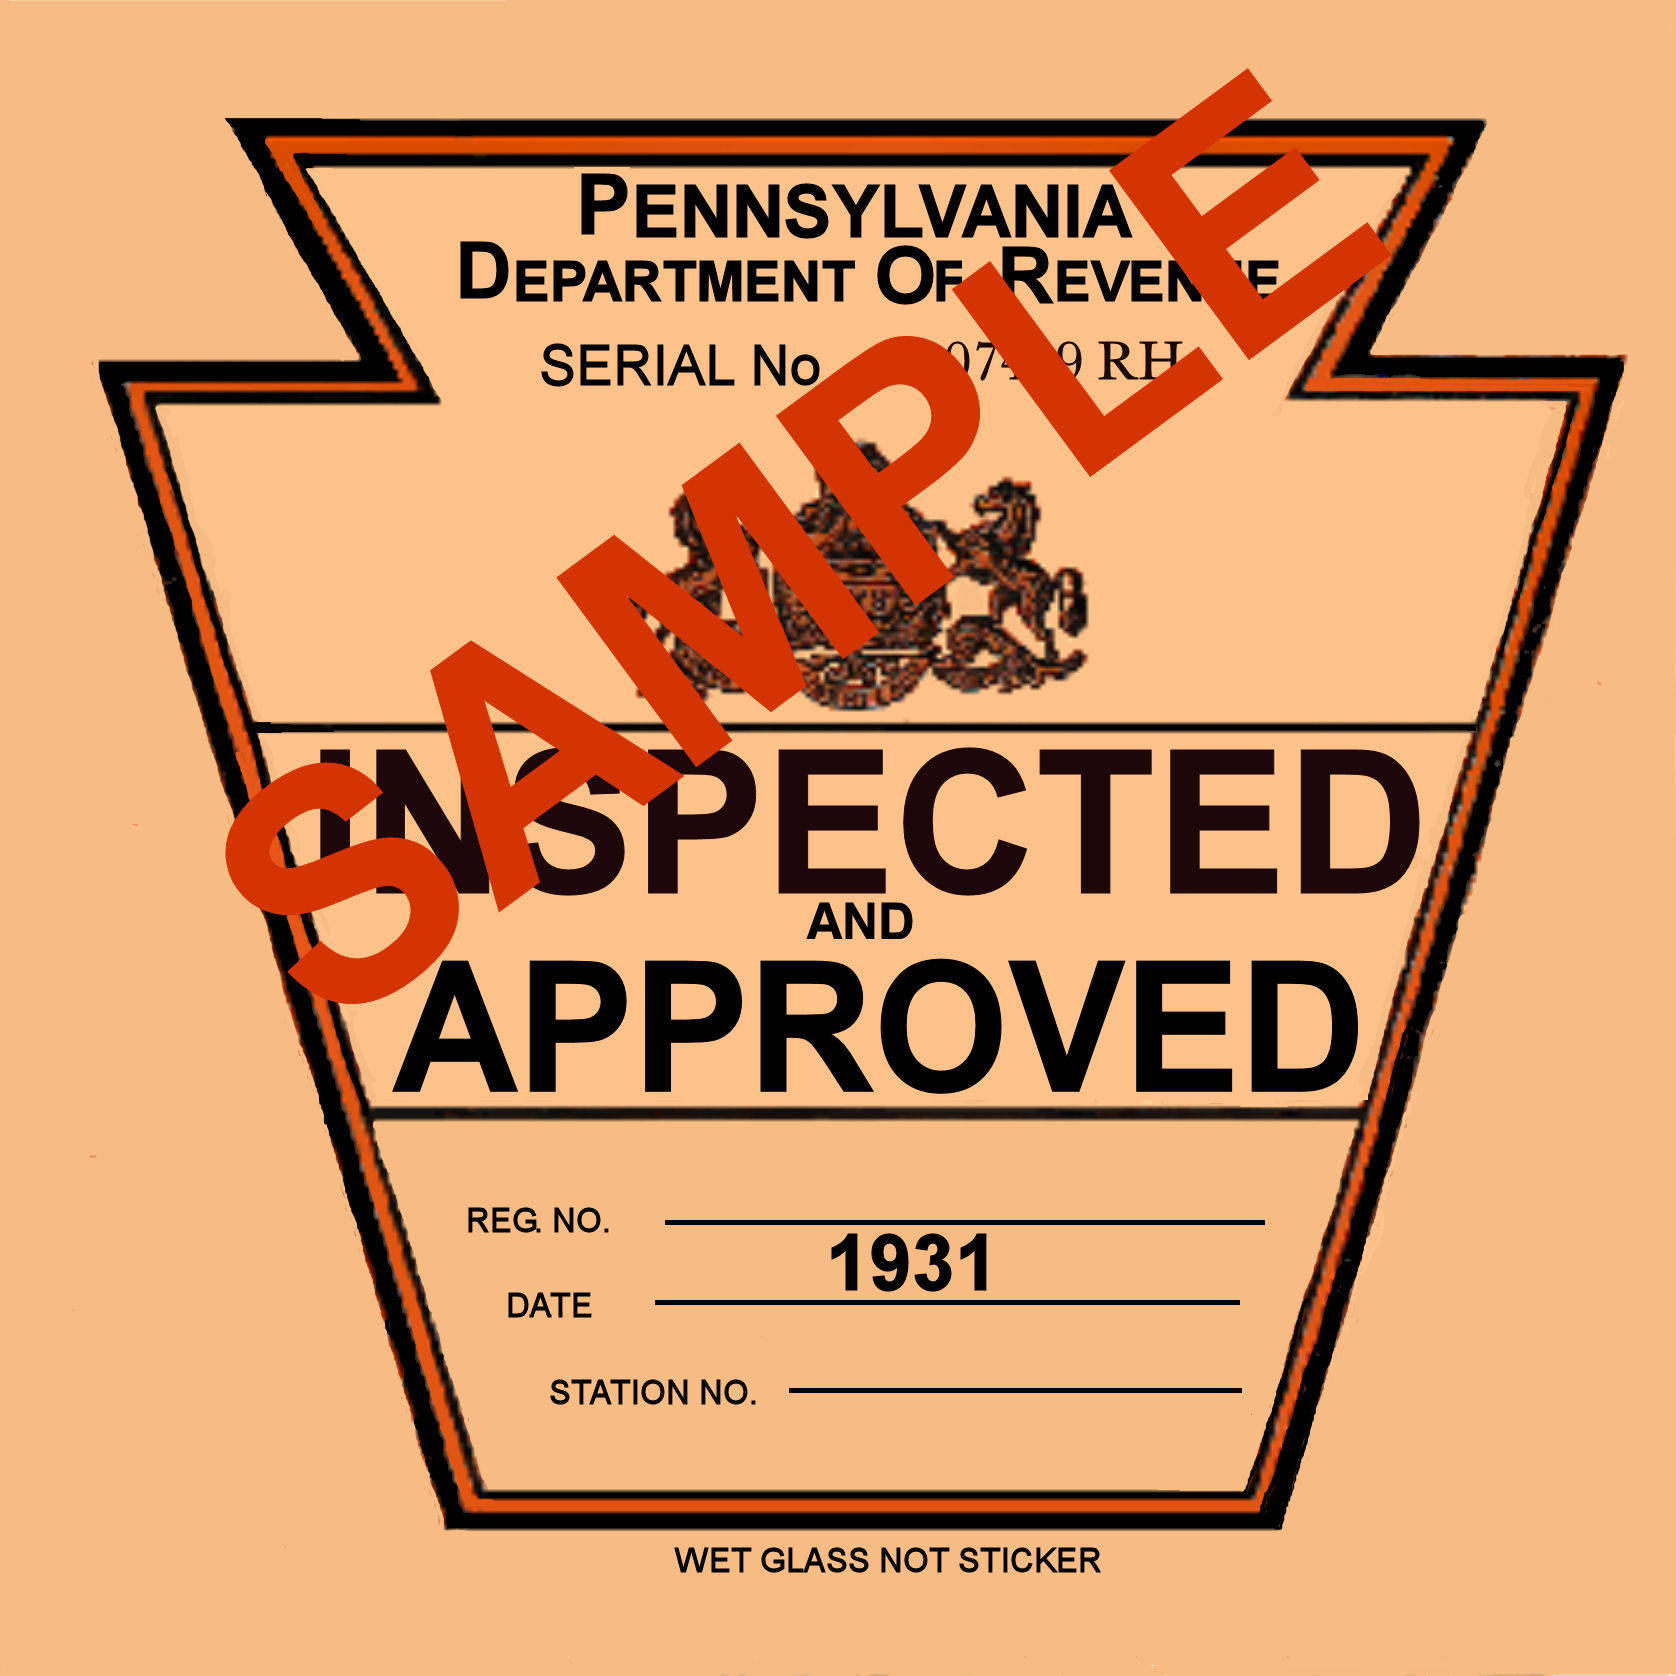 1931 Pennsylvania INSPECTION Sticker